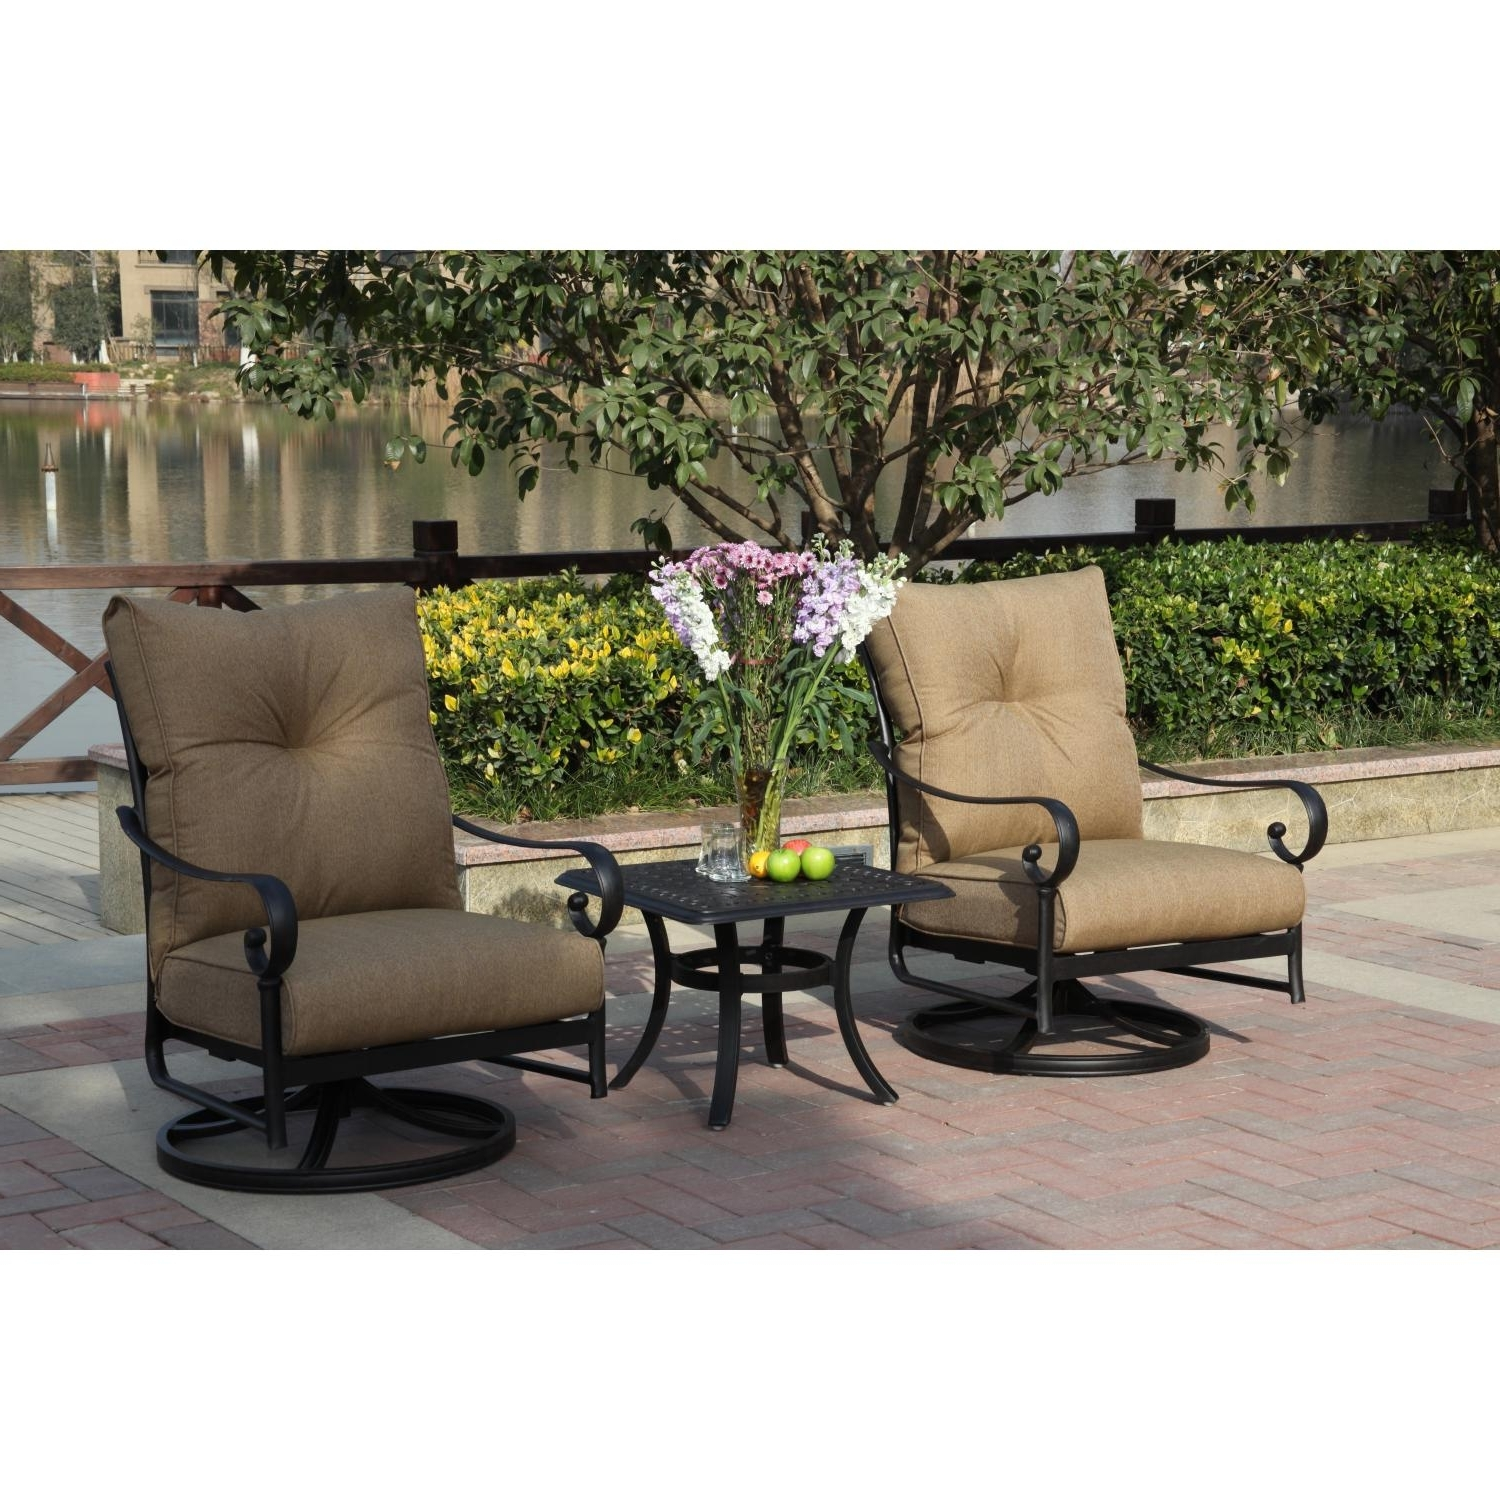 Famous Darlee Santa Anita 3 Piece Aluminum Patio Conversation Seating Set Pertaining To Patio Conversation Sets With Swivel Chairs (View 6 of 15)